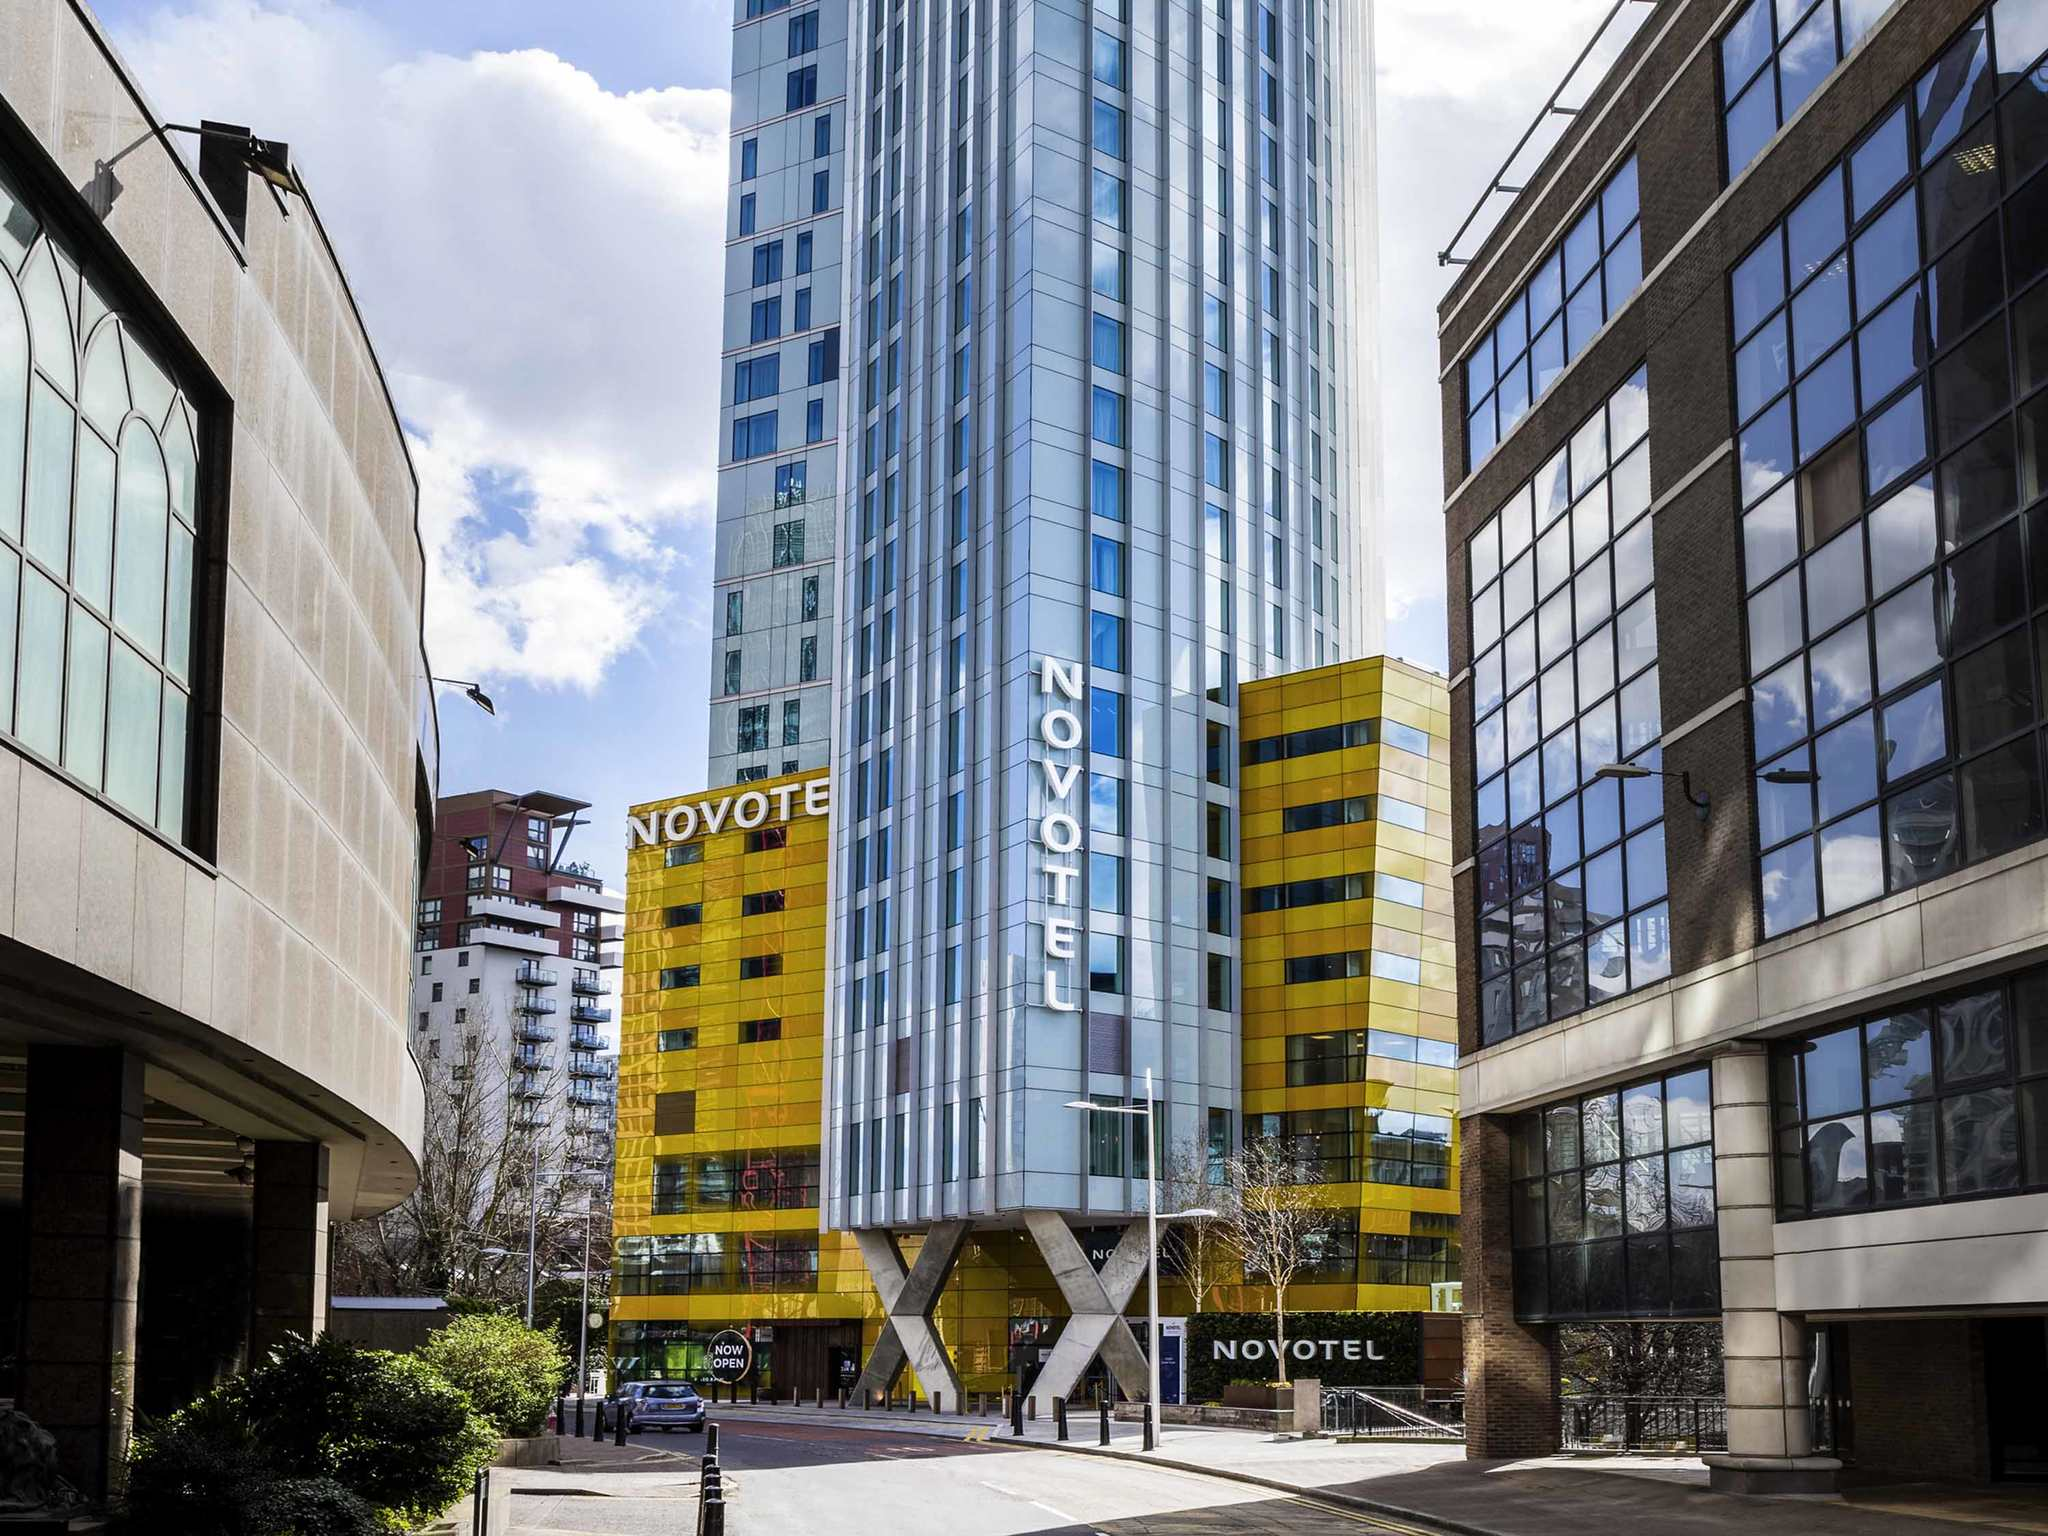 Hotel in london novotel london canary wharf for Hotel adagio londres